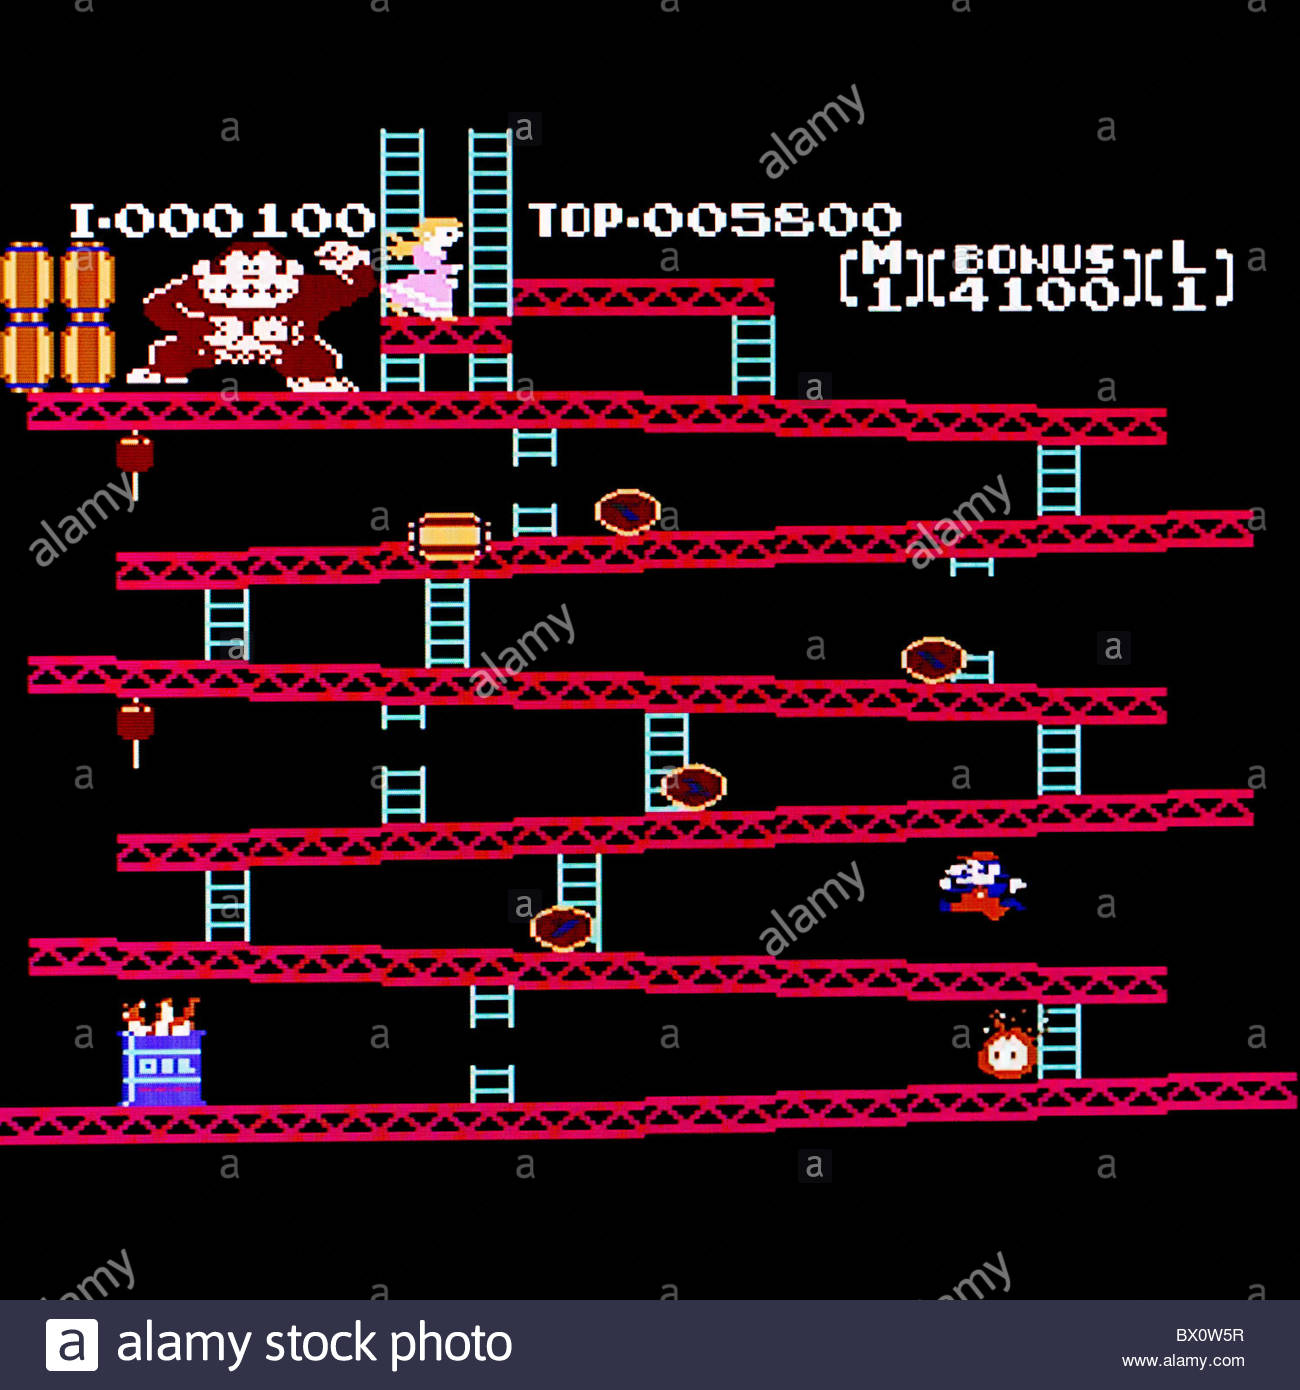 Donkey Kong classic arcade game screen shot - Stock Image